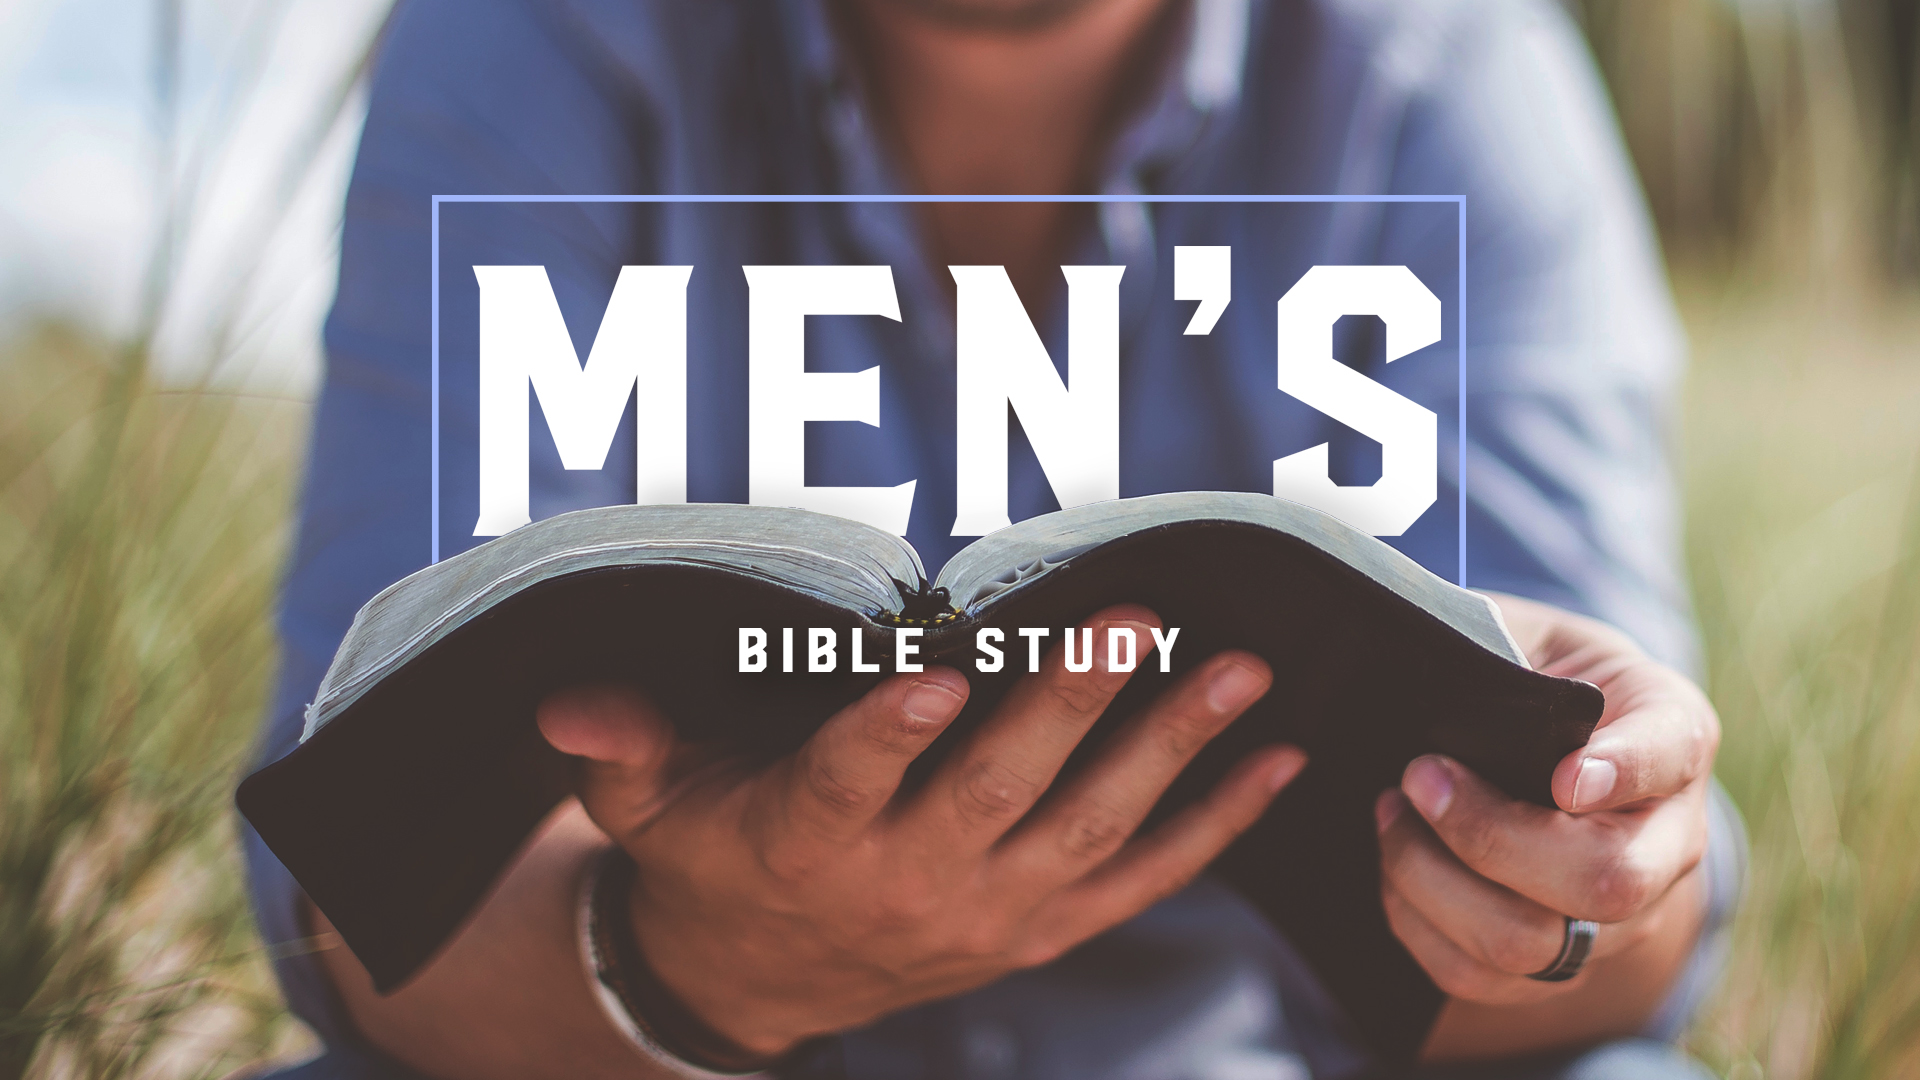 men_s_bible_study-title-1-Wide 16x9.jpg